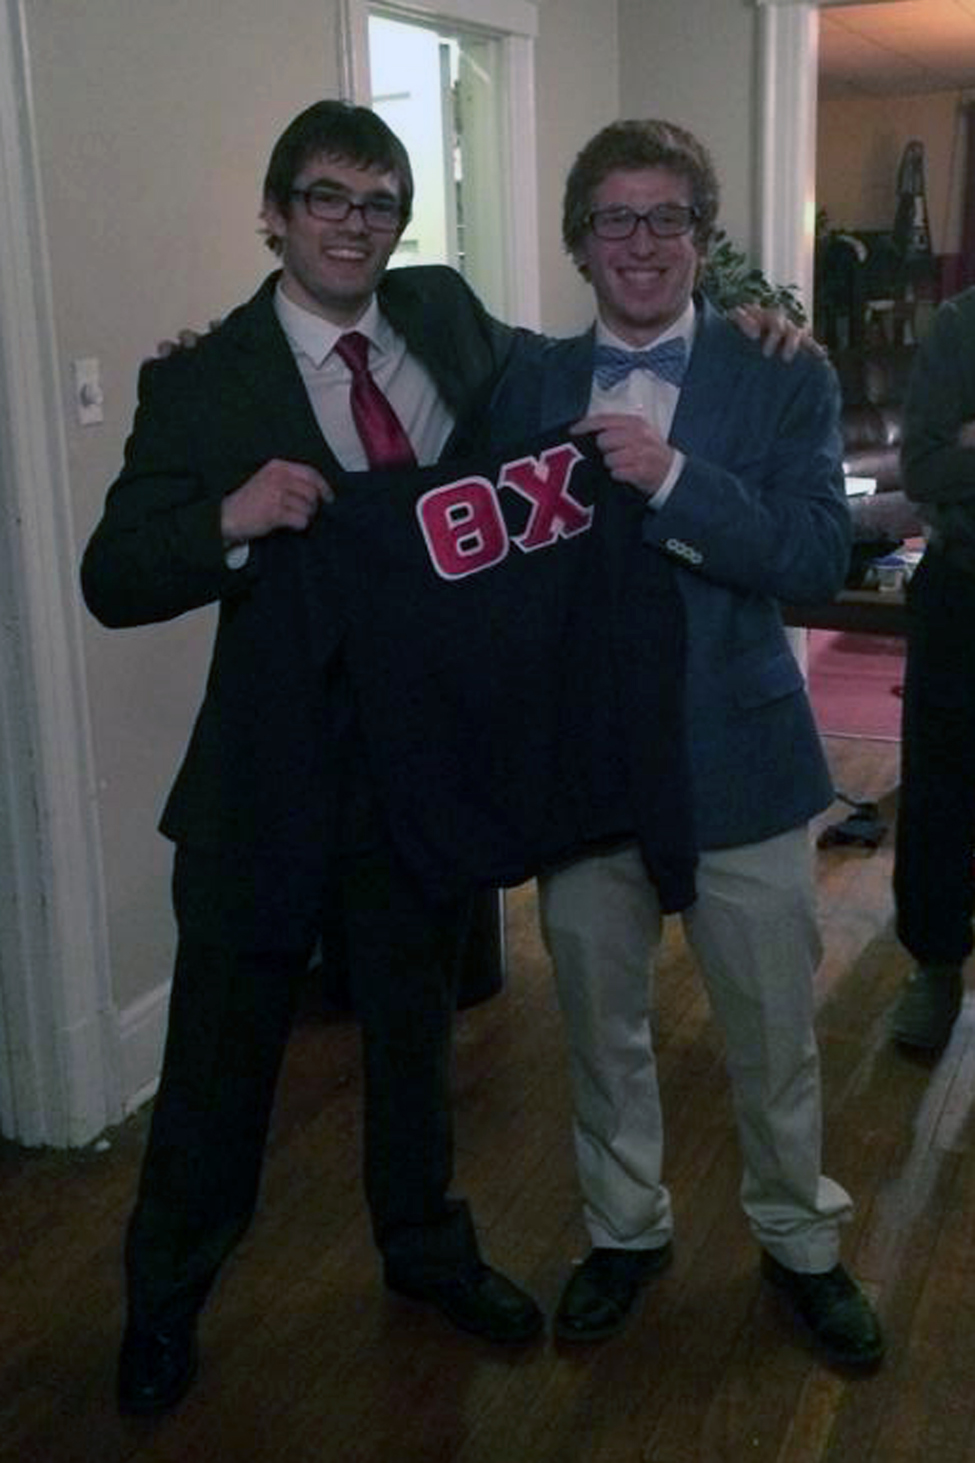 Brandon Roberts and Connor DeKranis - Spring 2014 Initiation Night - April 2014